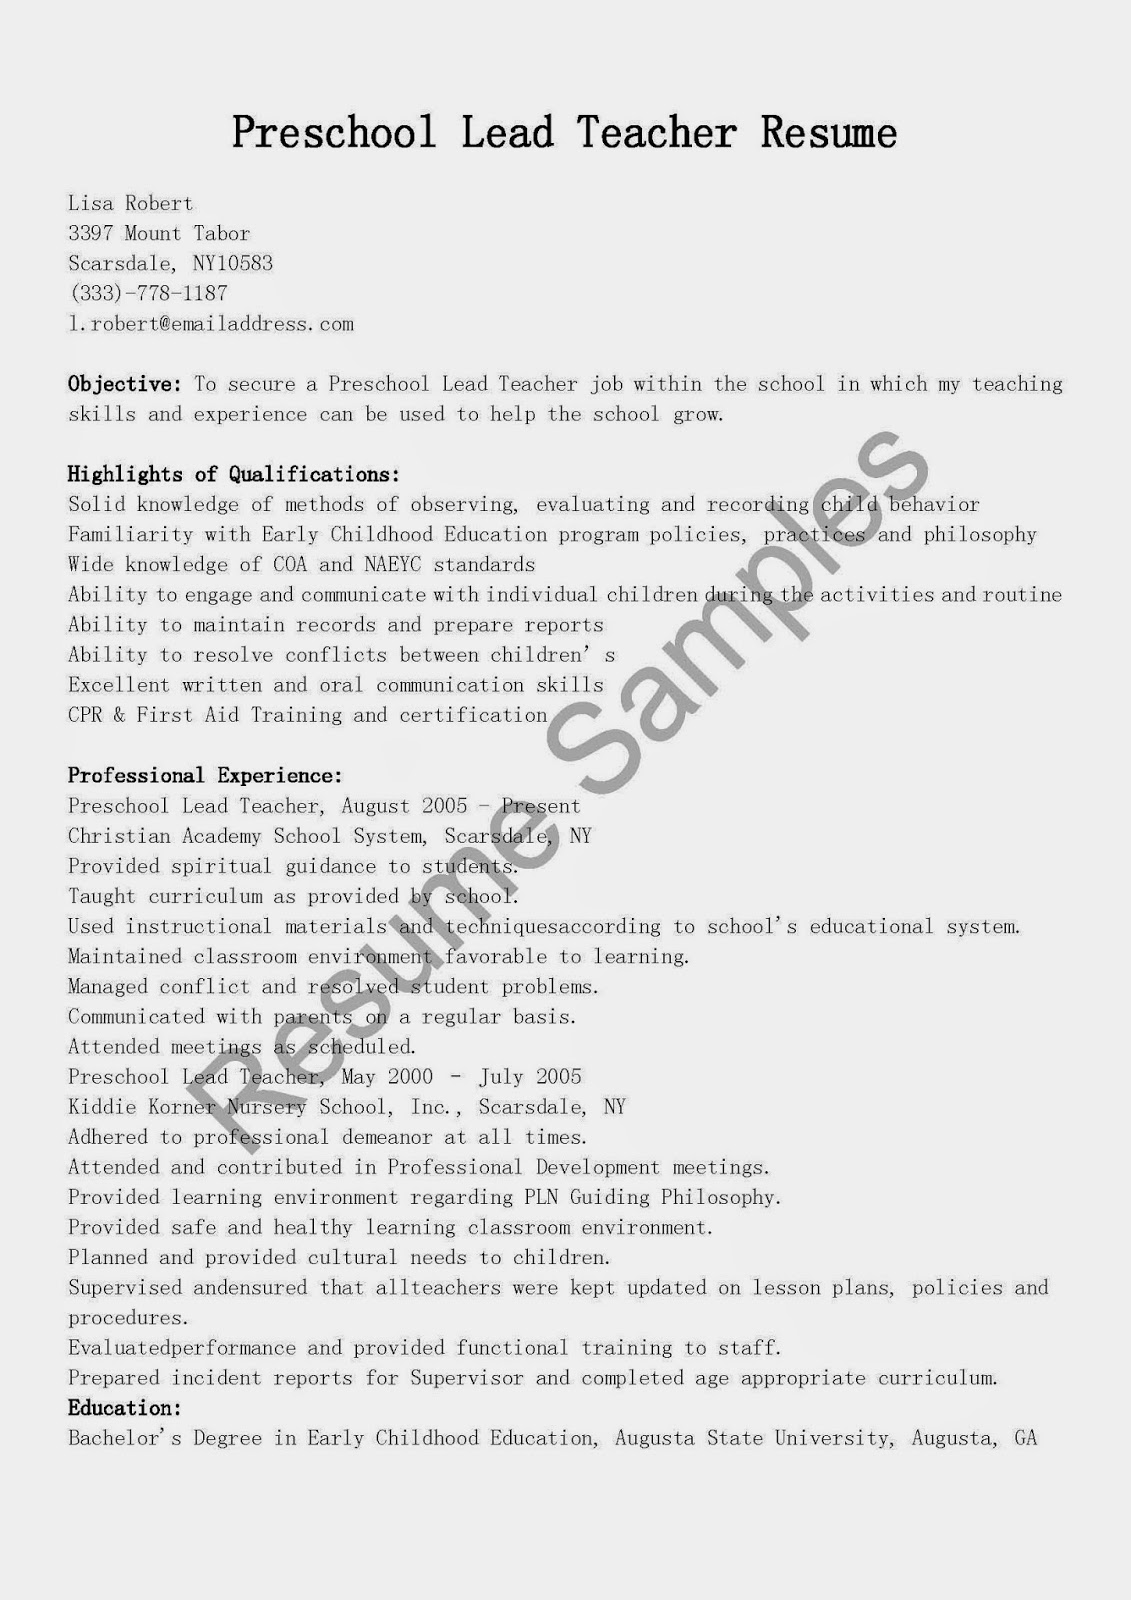 Lead Teacher Job Description Resume Resume Samples Preschool Lead Teacher Resume Sample